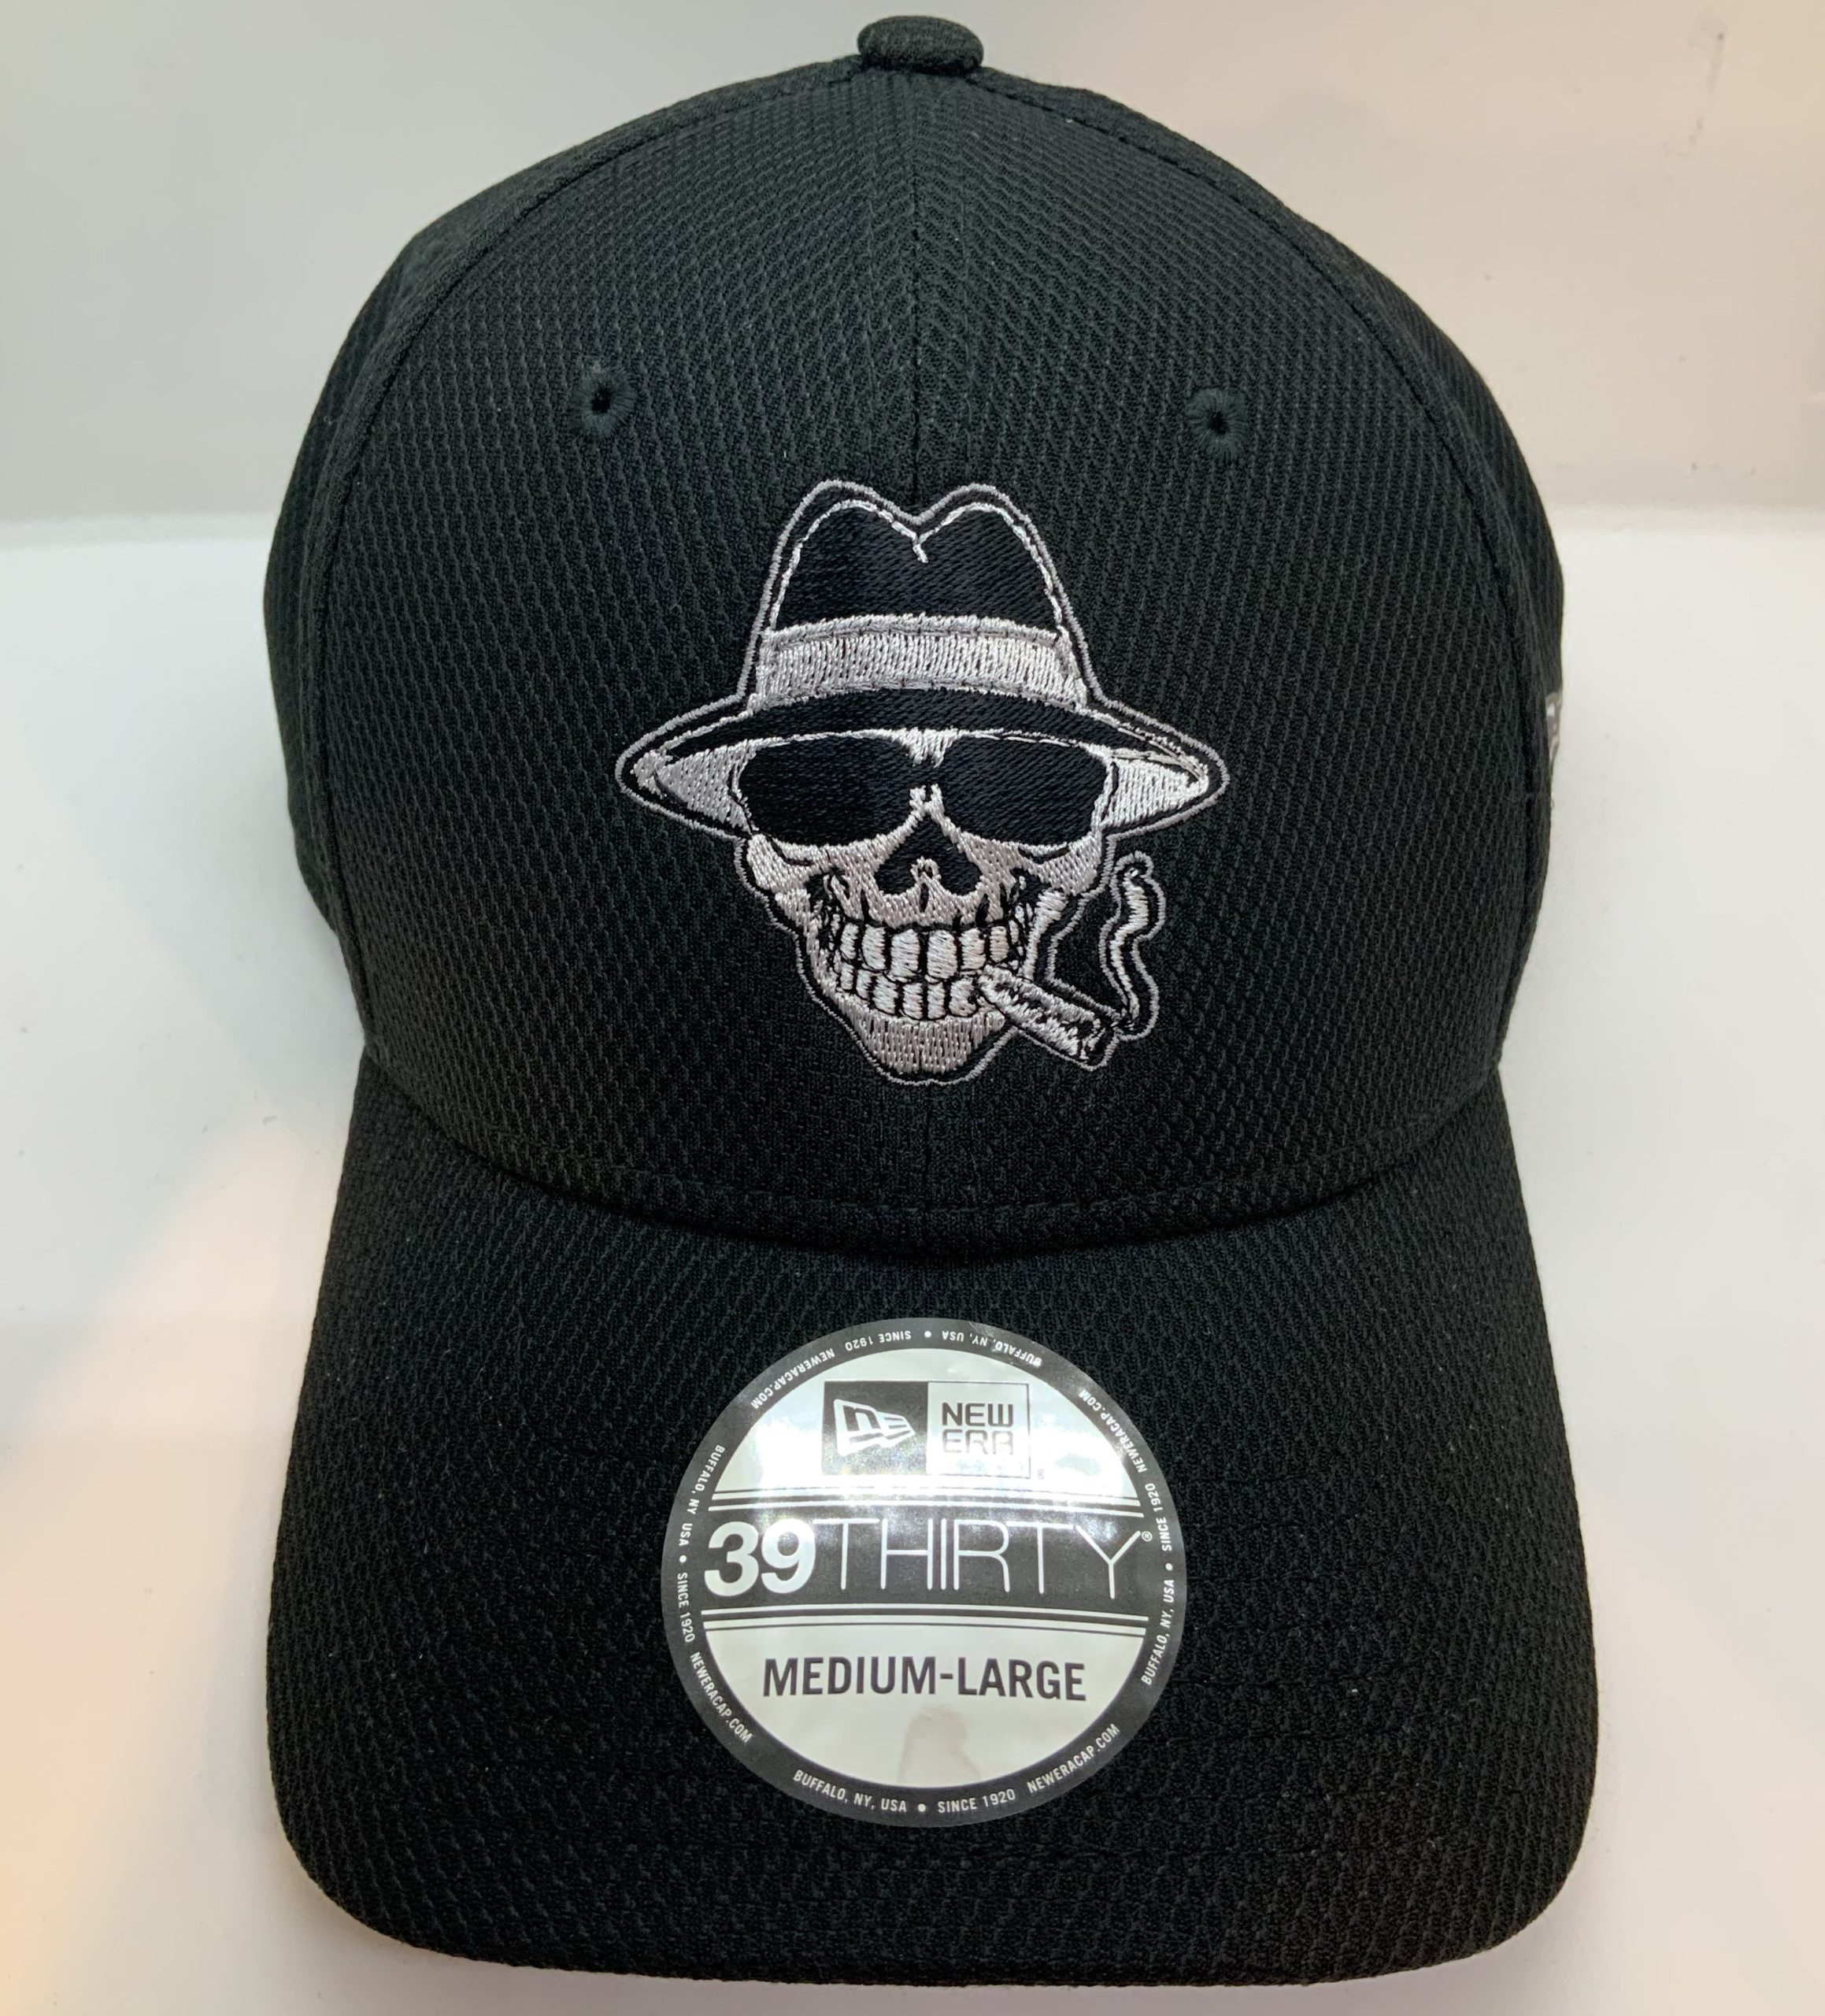 "Smoking Joe, Weirdo, & Sith Lord ""Apparition"" New Era 39Thirty Fitted Hat"